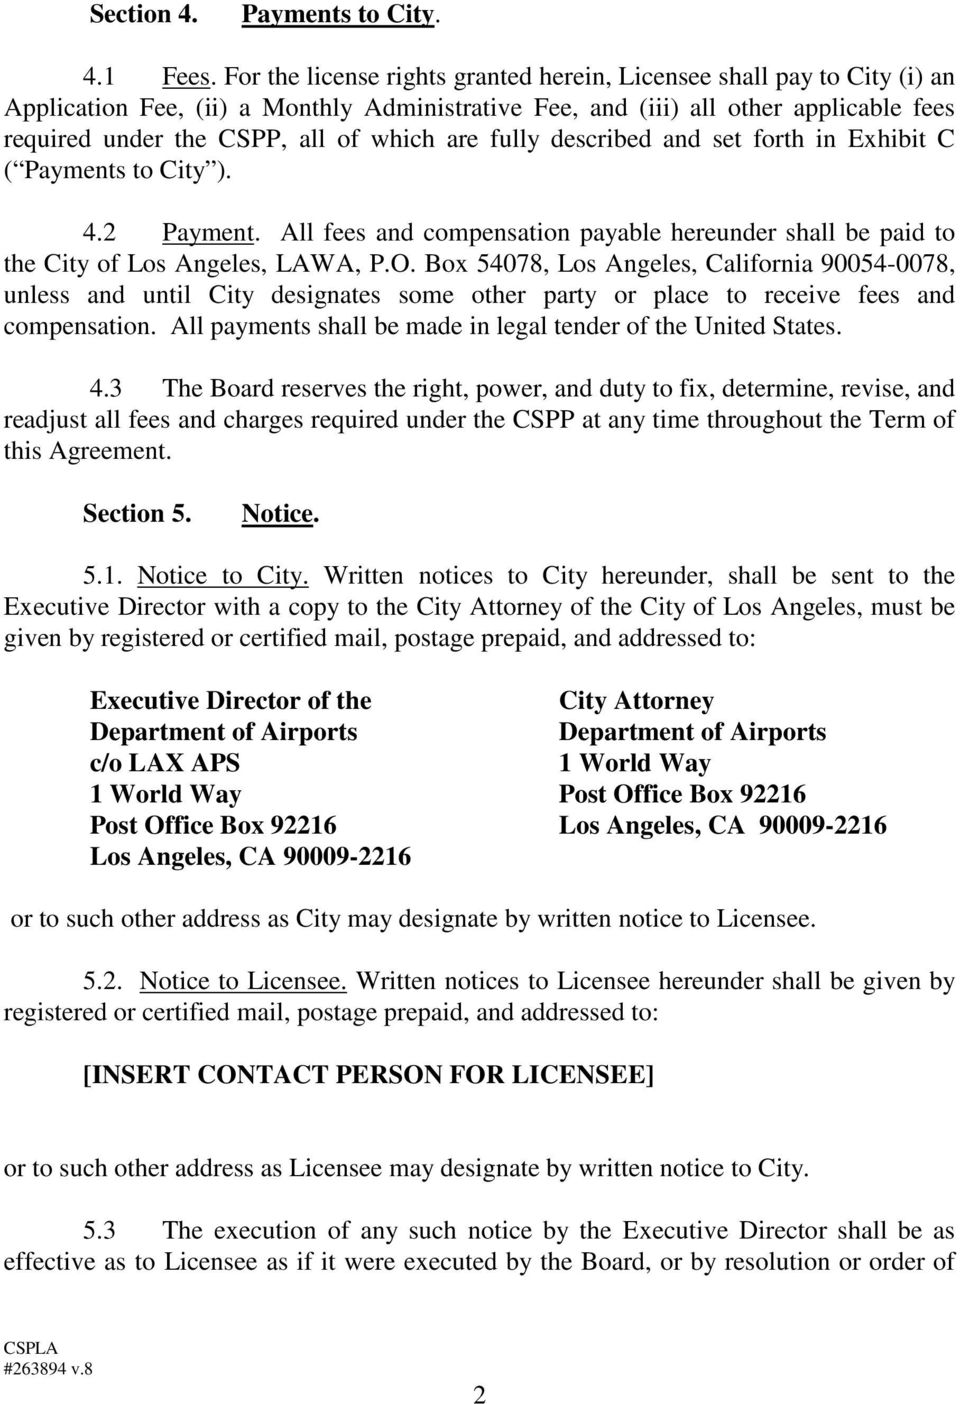 CERTIFIED SERVICE PROVIDER LICENSE AGREEMENT BETWEEN CITY OF